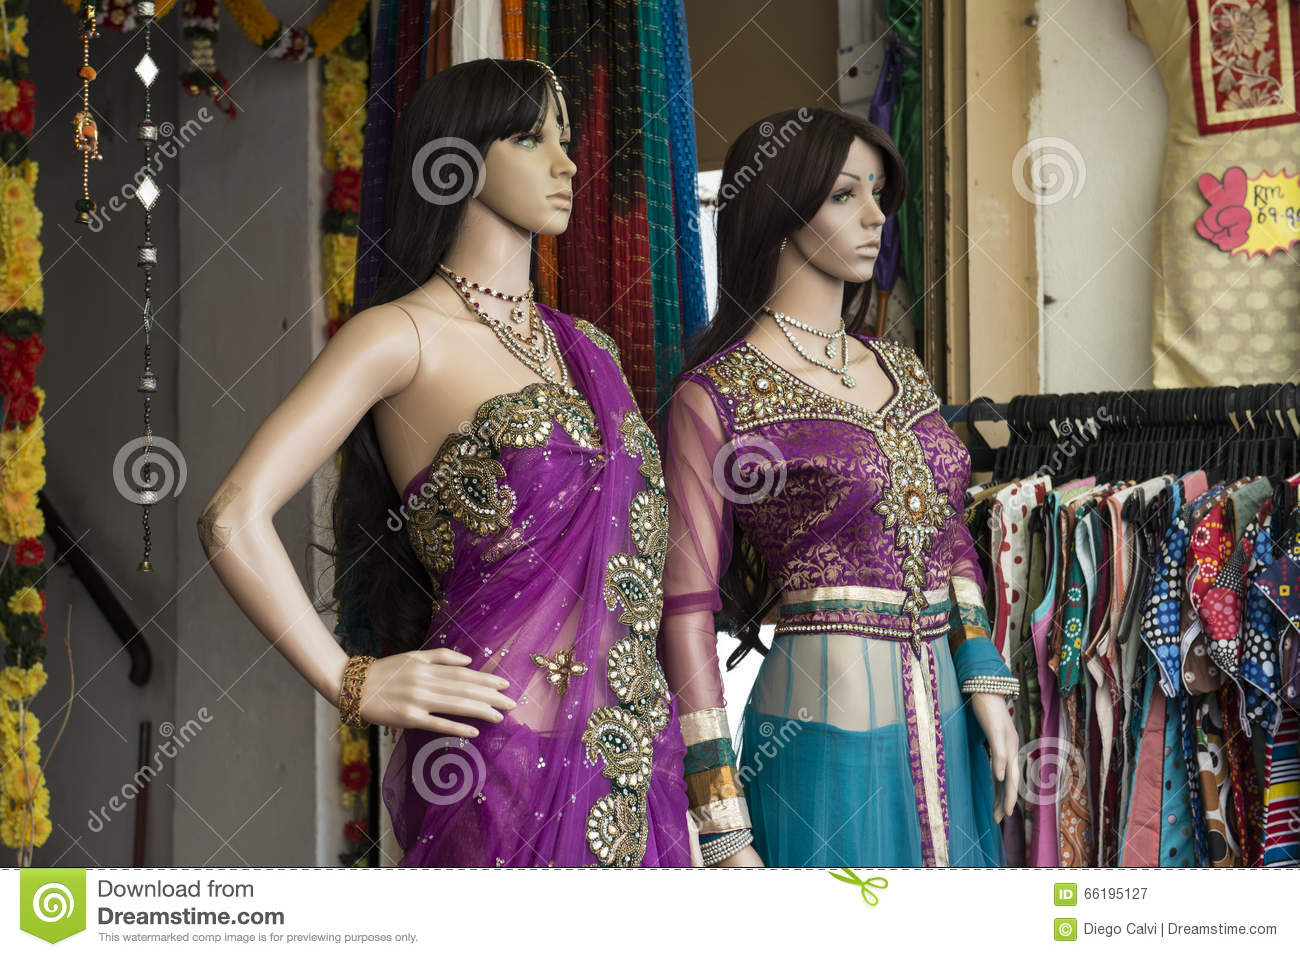 64c2aa01940 Mannequins in a shop with traditional Indian costumes Sari. Georgetown